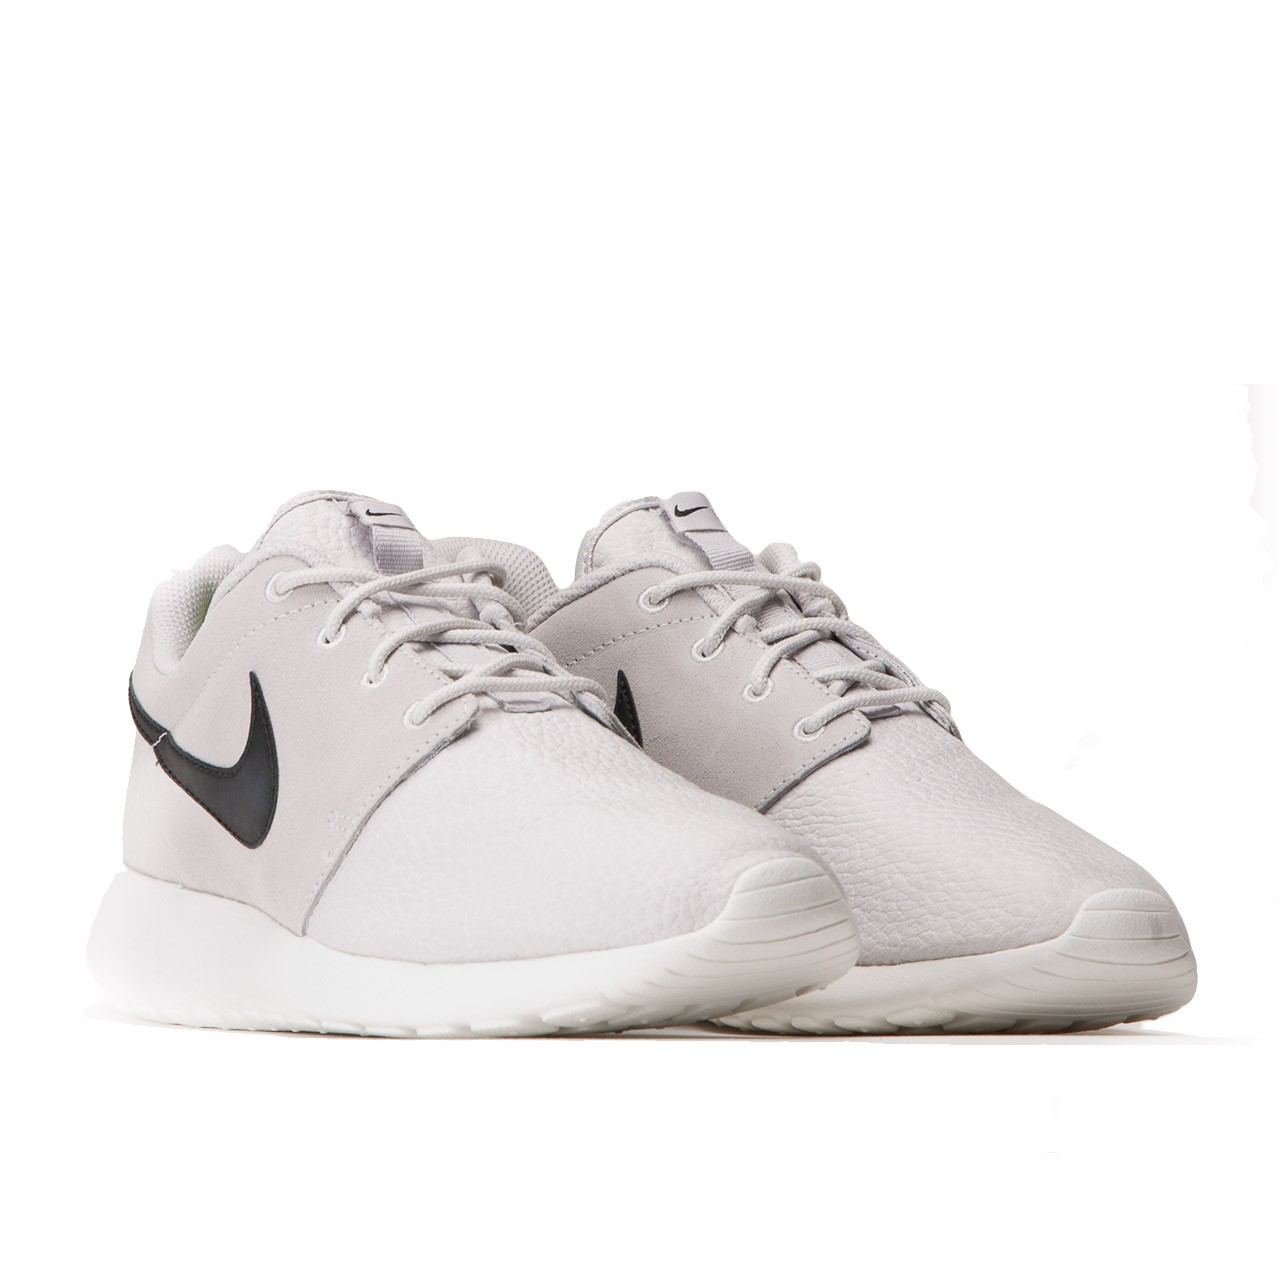 nike roshe run suede light ash grey schwarz wei. Black Bedroom Furniture Sets. Home Design Ideas